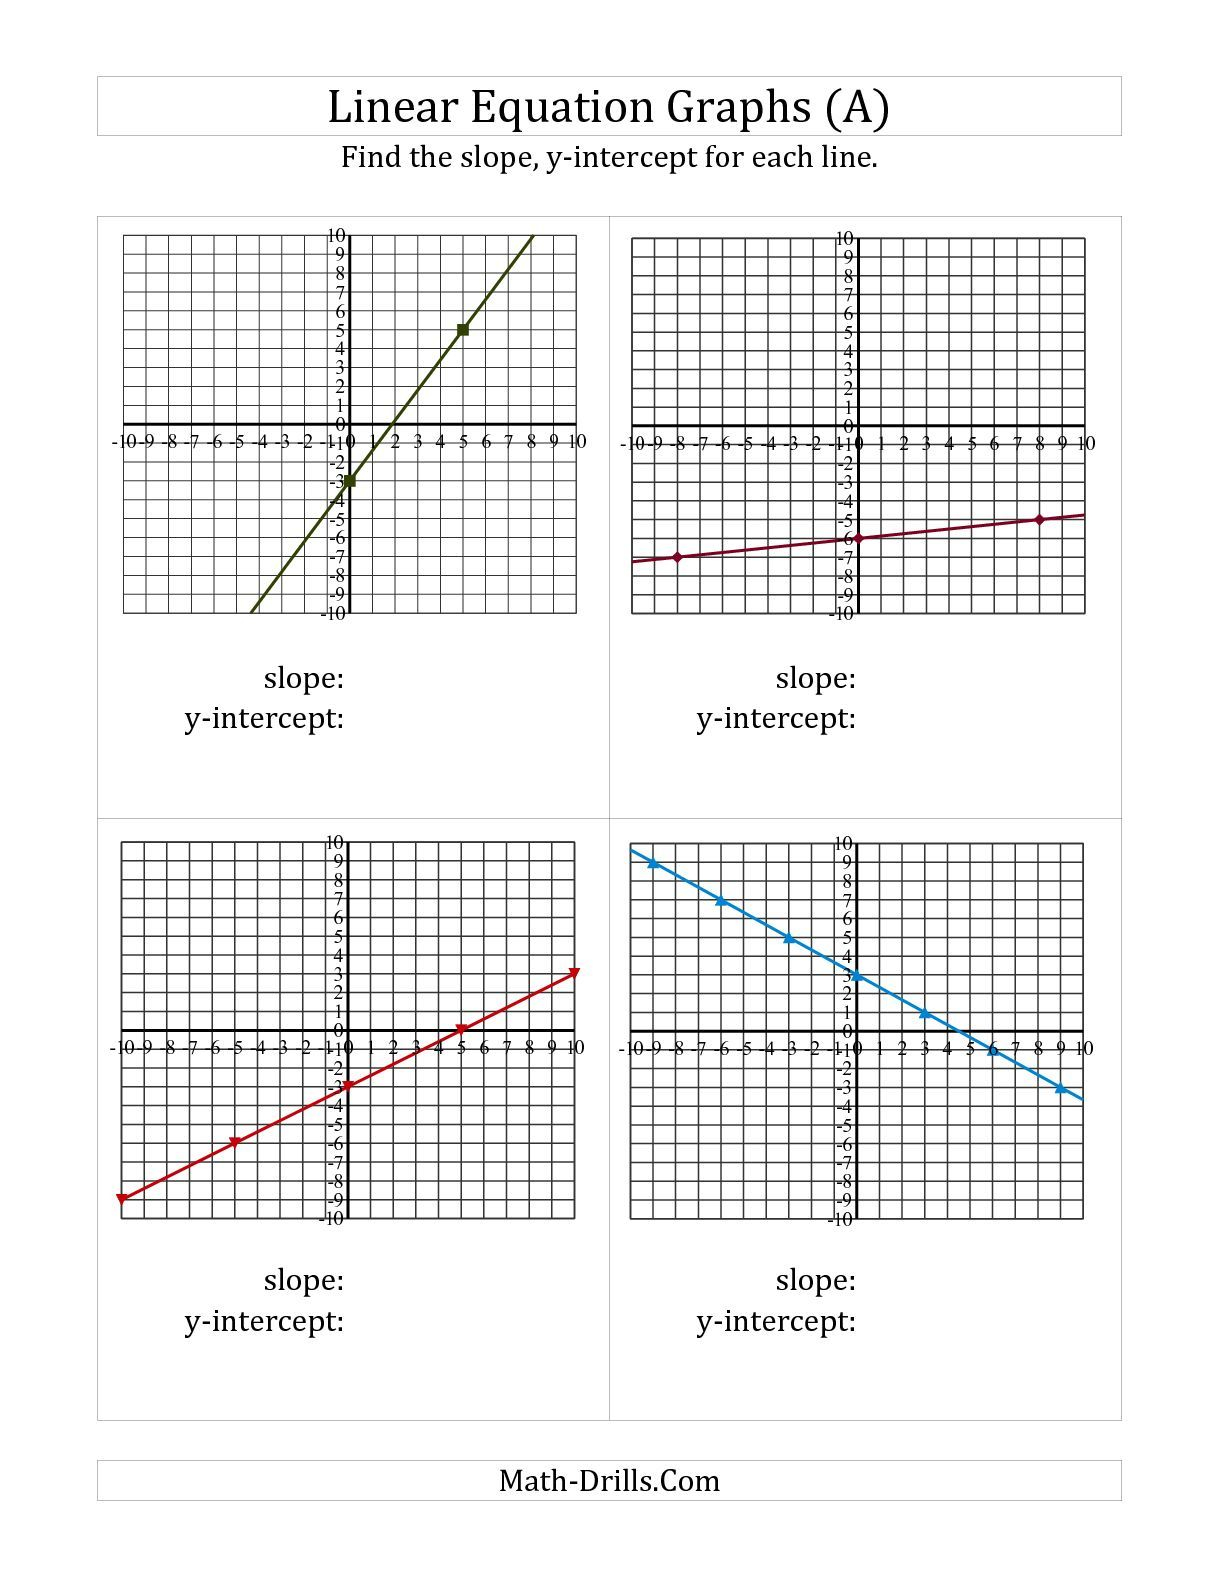 The Finding Slope And Y-Intercept From A Linear Equation